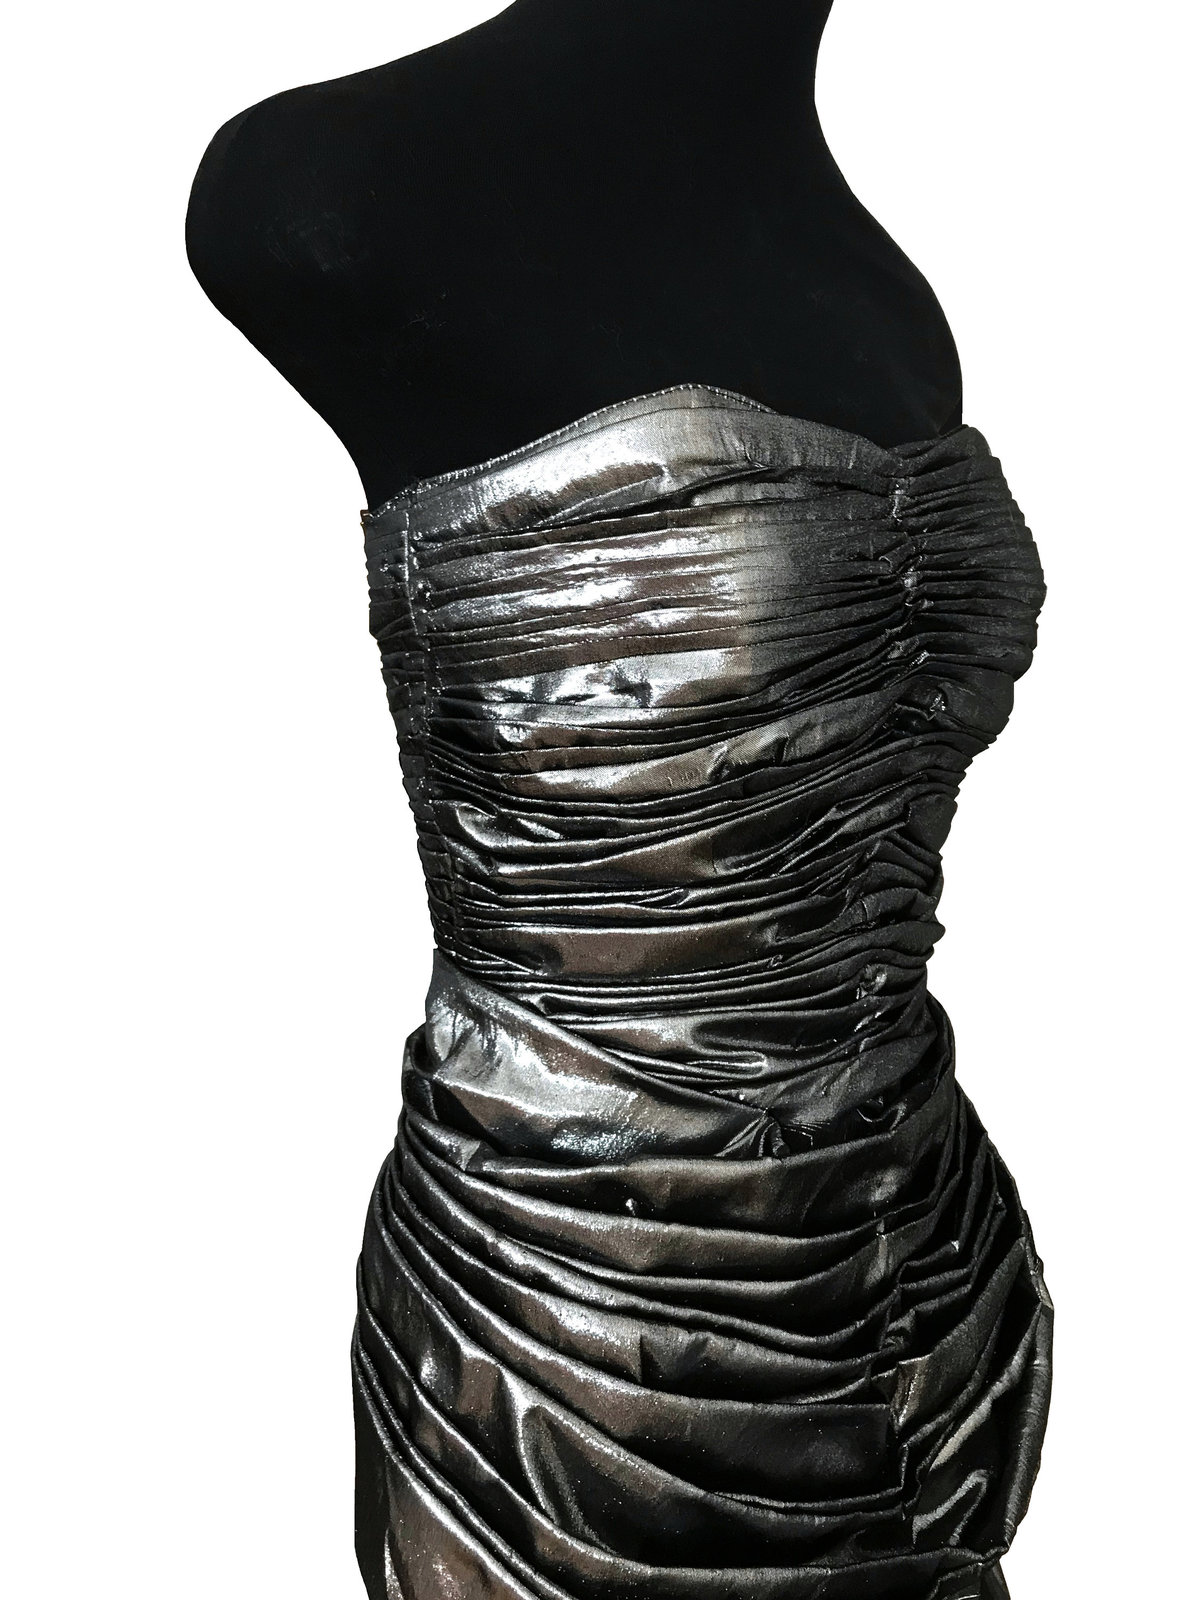 80s Etienne Brunel Paris Silver Metallic Lame Strapless Ruched Swing Party Dress image 7